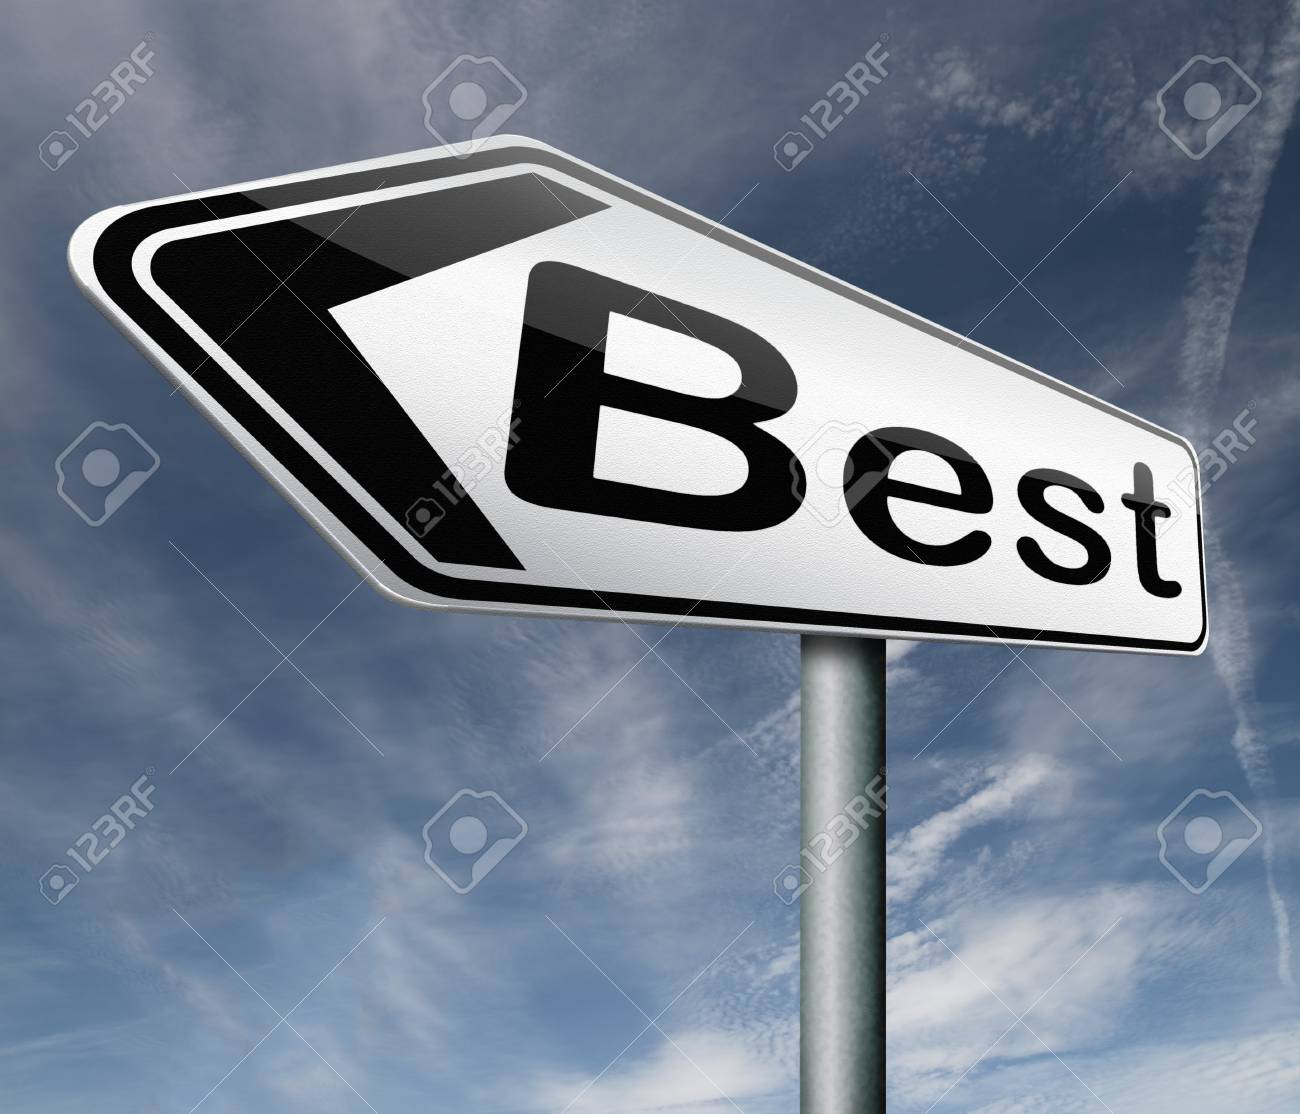 best price bargain sales or quality best icon best button road sign arrow Stock Photo - 16575393